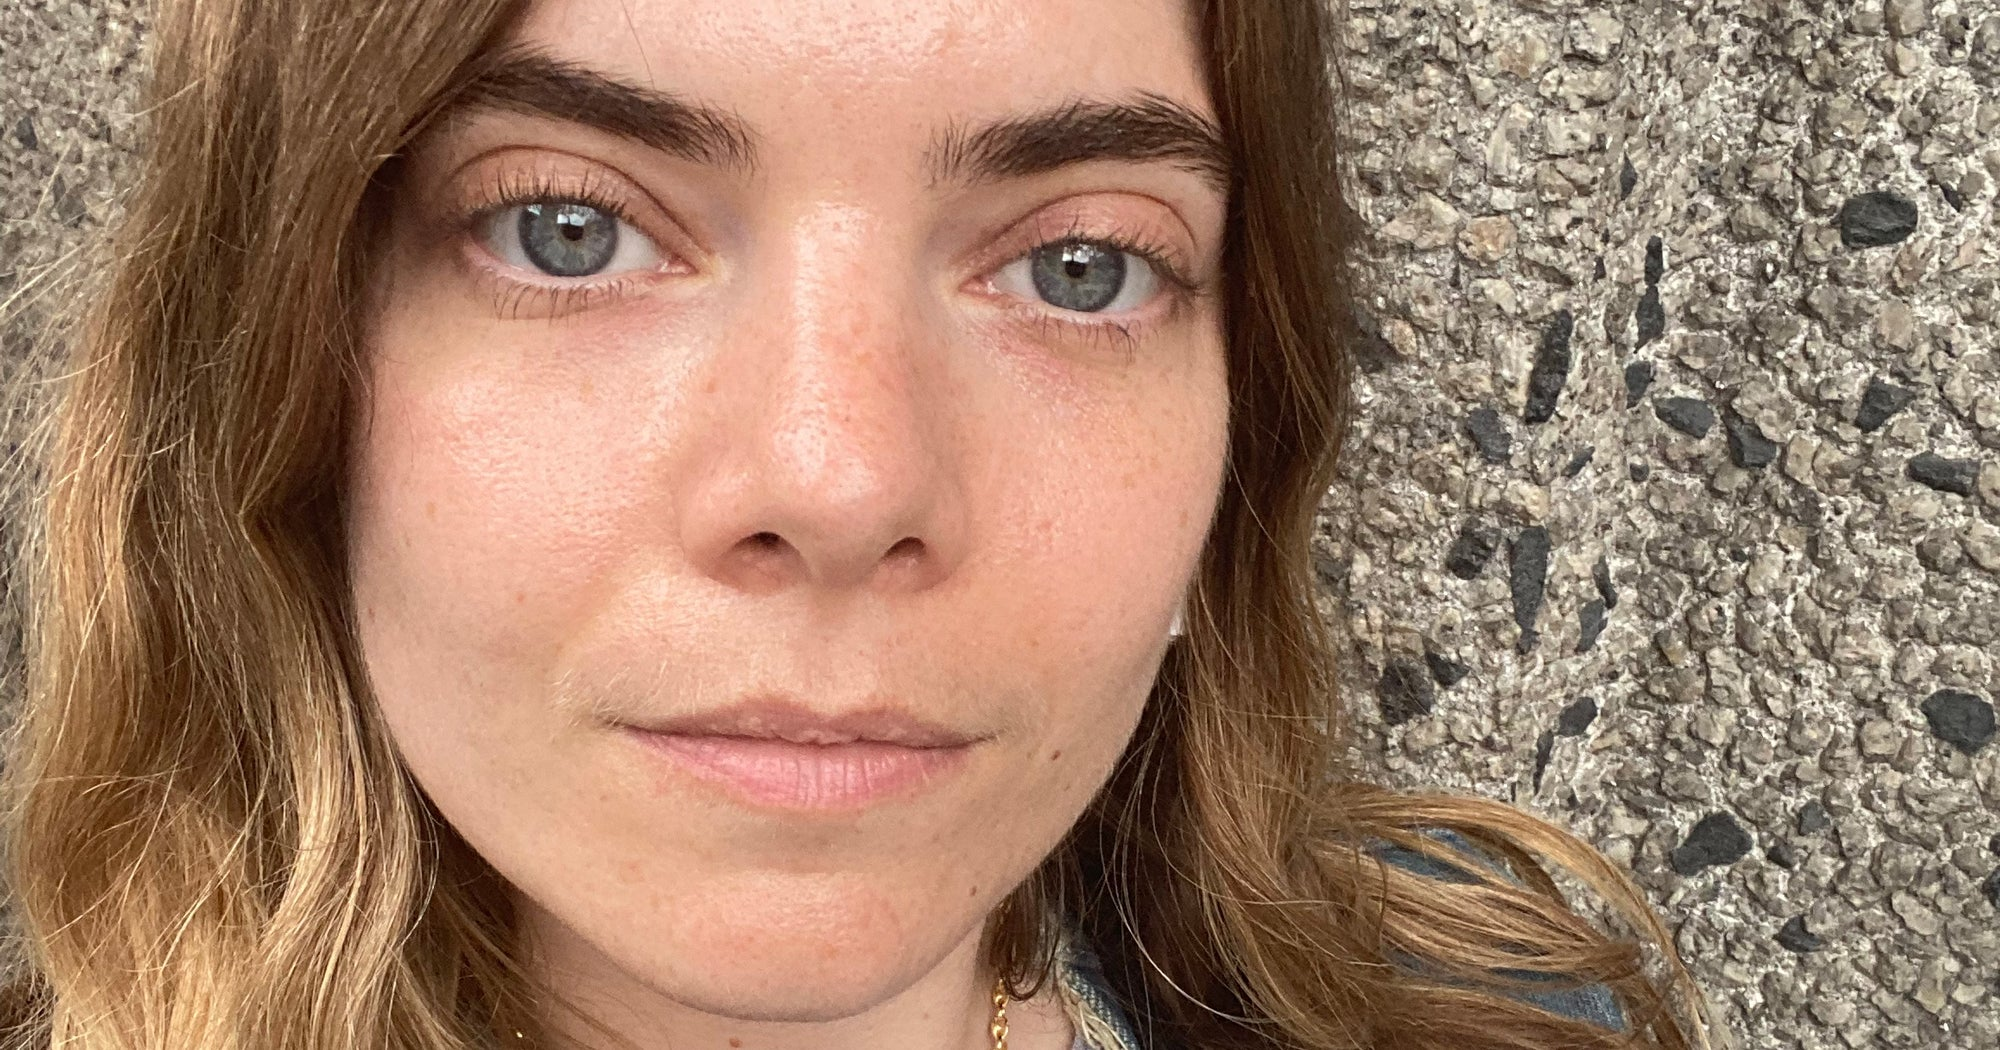 I Got My Face Lasered To Improve My Skin & Here's What I Learned